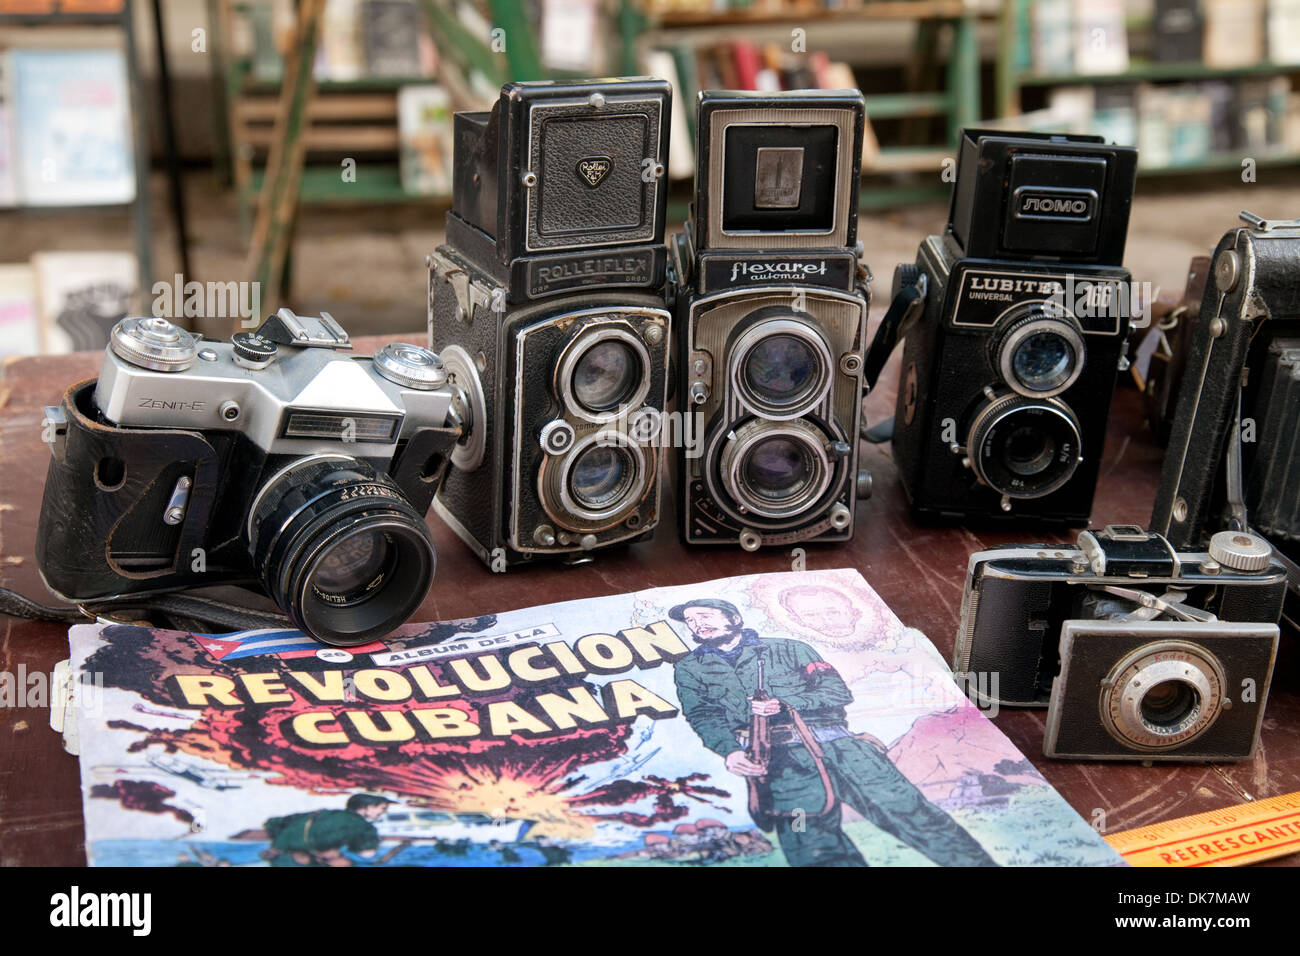 Old cameras for sale, Plaza de Armas square, Havana Cuba Caribbean - Stock Image